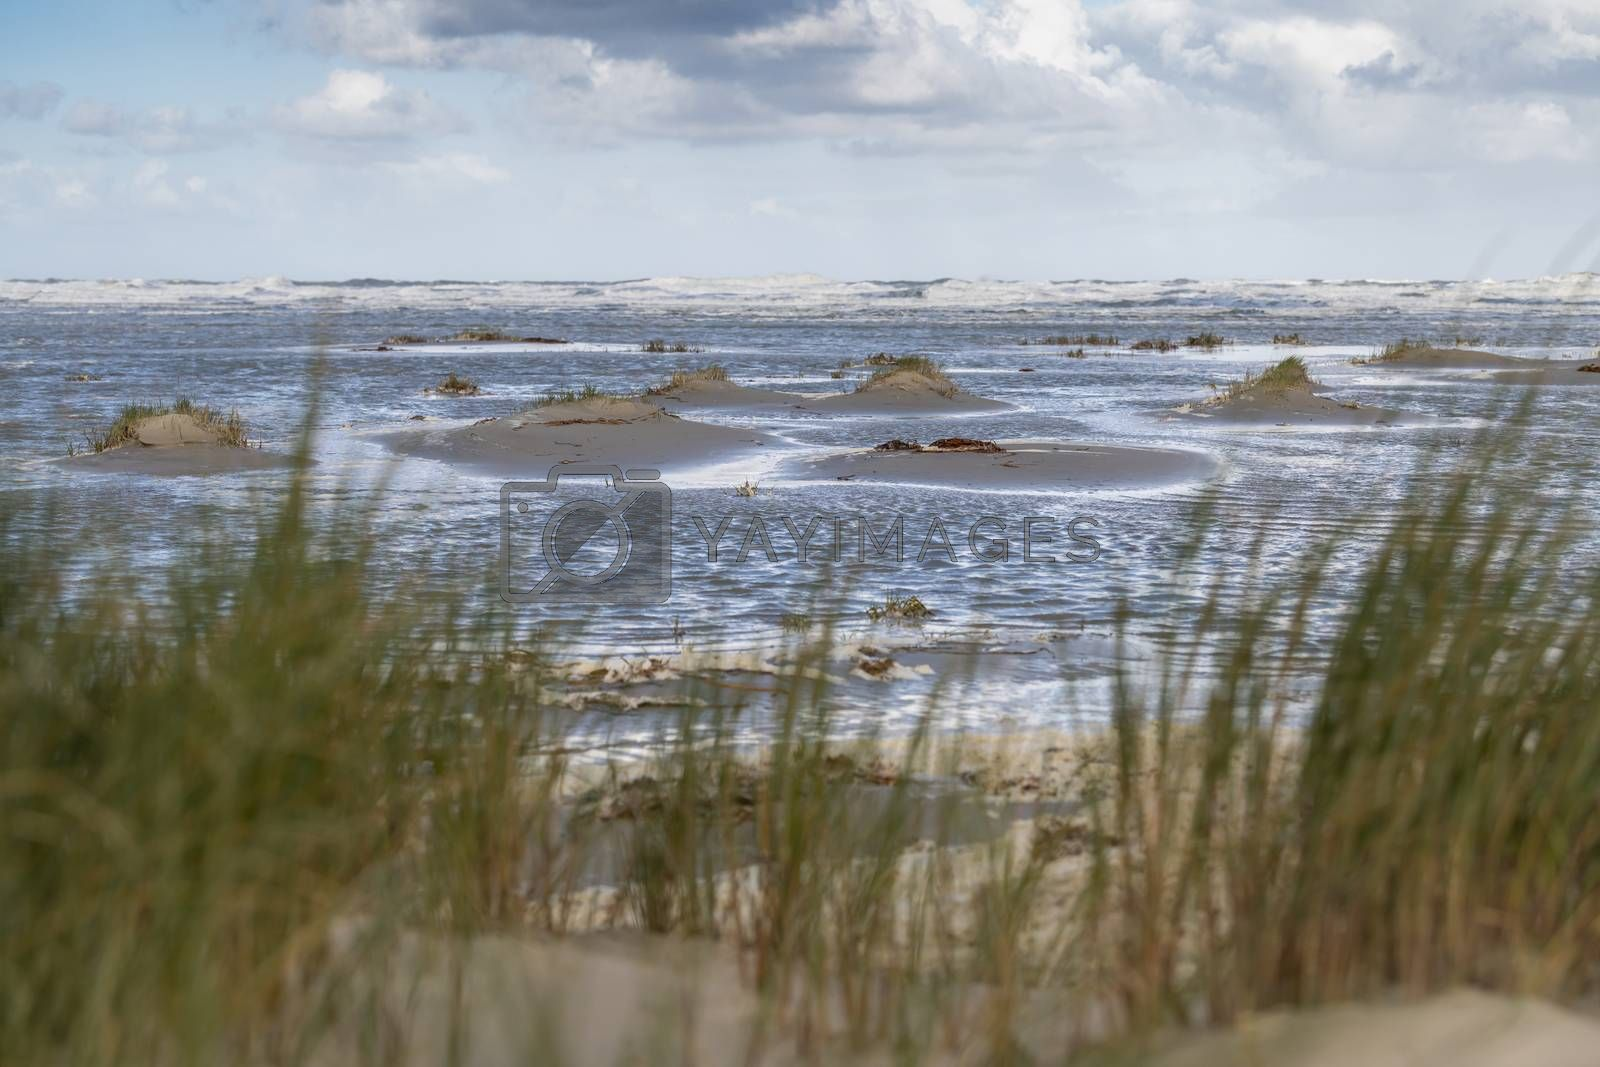 Beach on the wadden sea island of Terschelling, in the northern part of the Netherlands